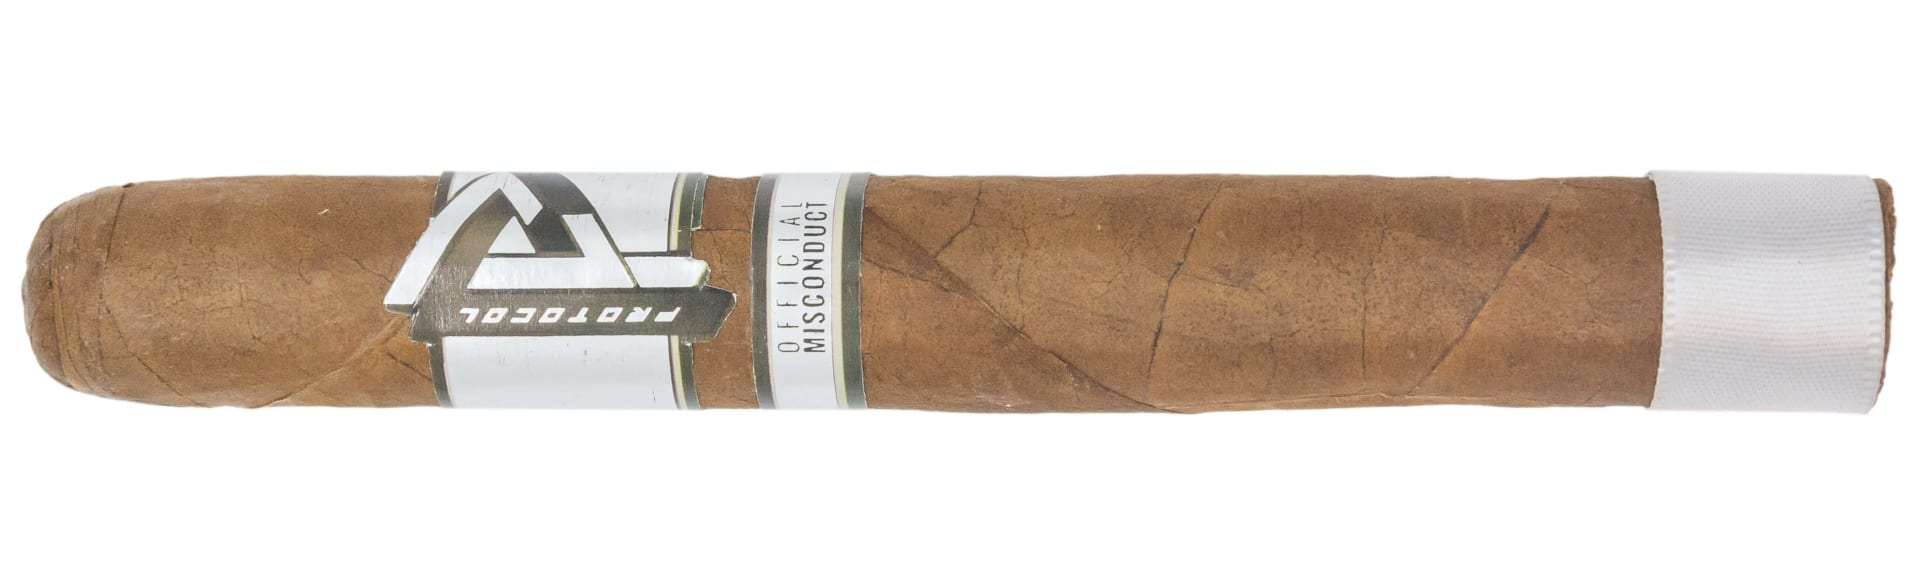 Blind Cigar Review: Cubariqueño | Protocol Official Misconduct Corona Gorda Featured Image